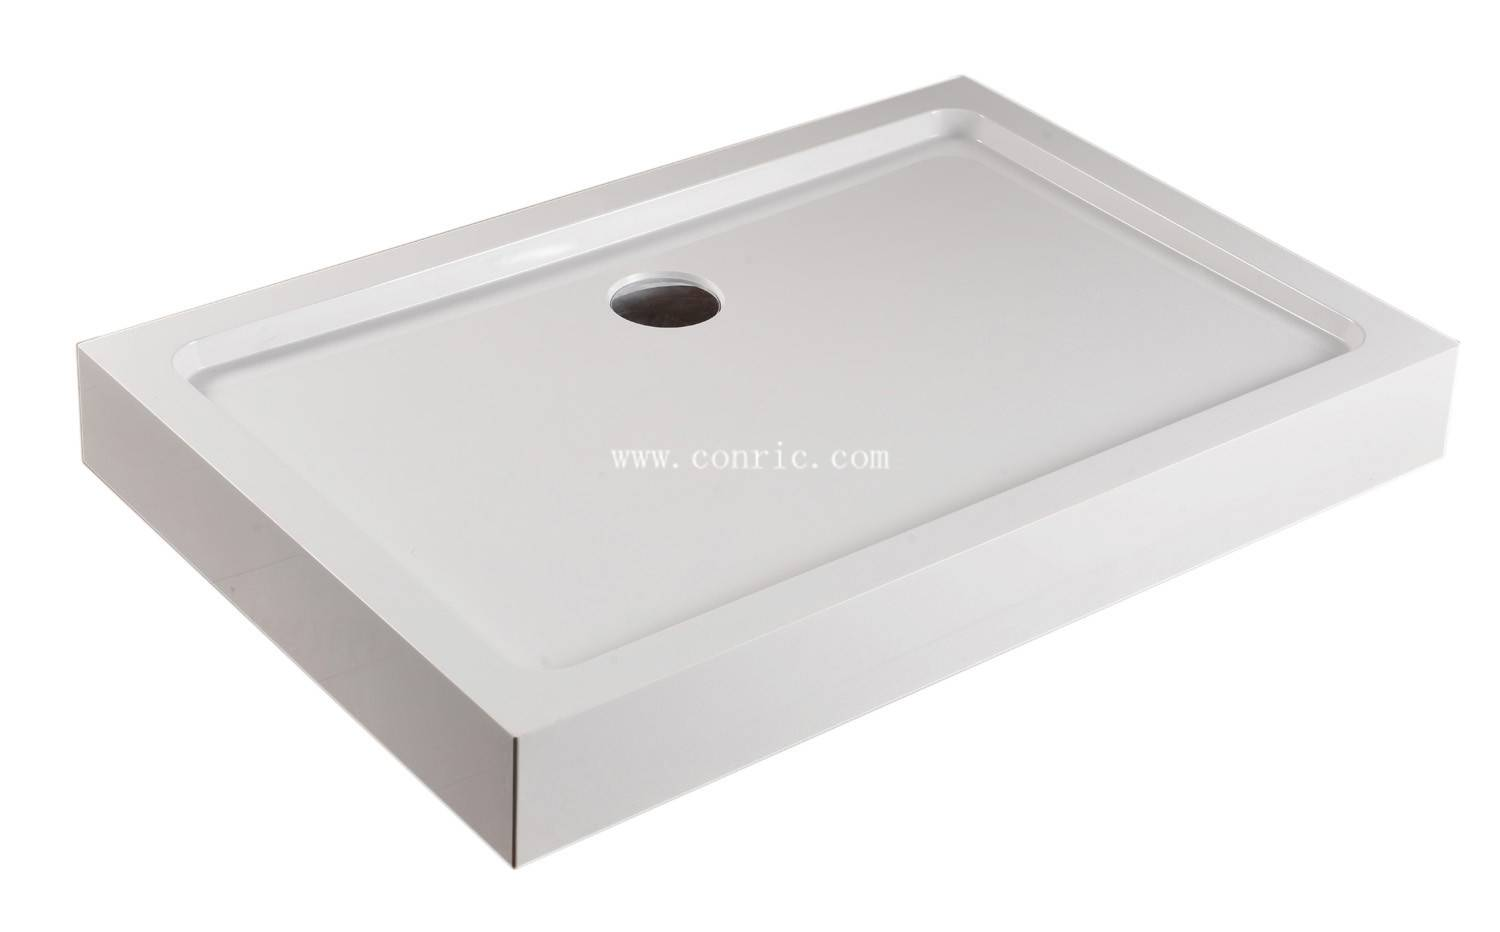 Modern family bathroom SMC shower tray